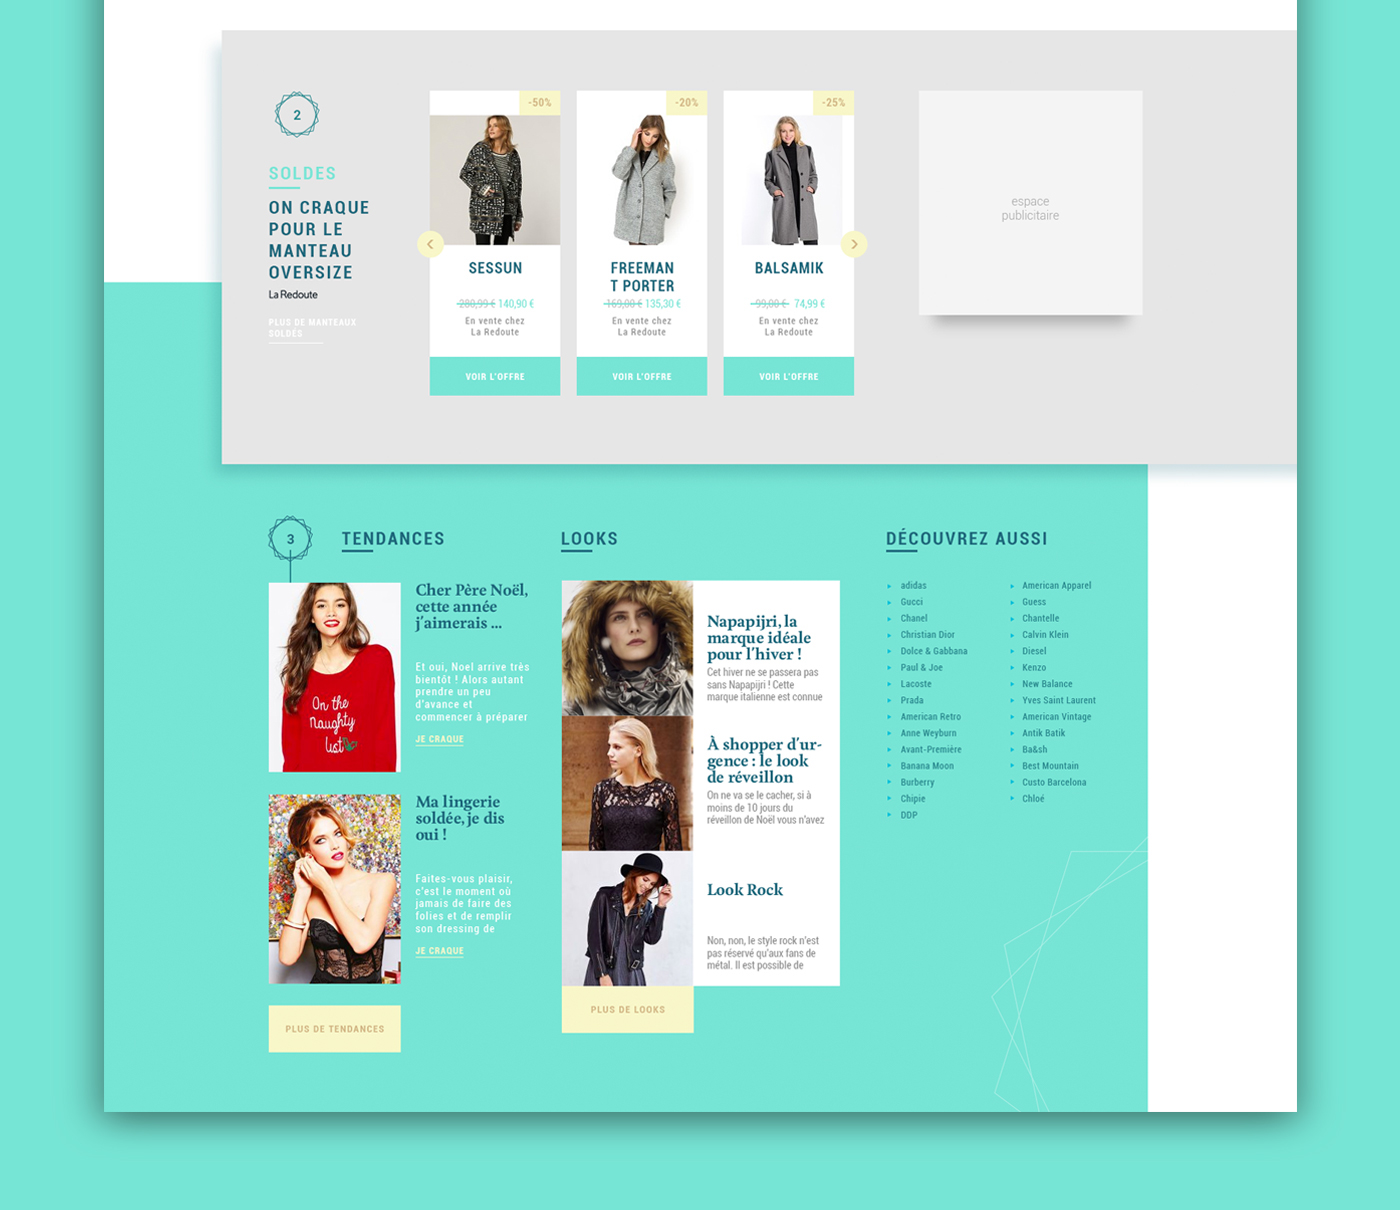 Pureshopping Redesign On Behance